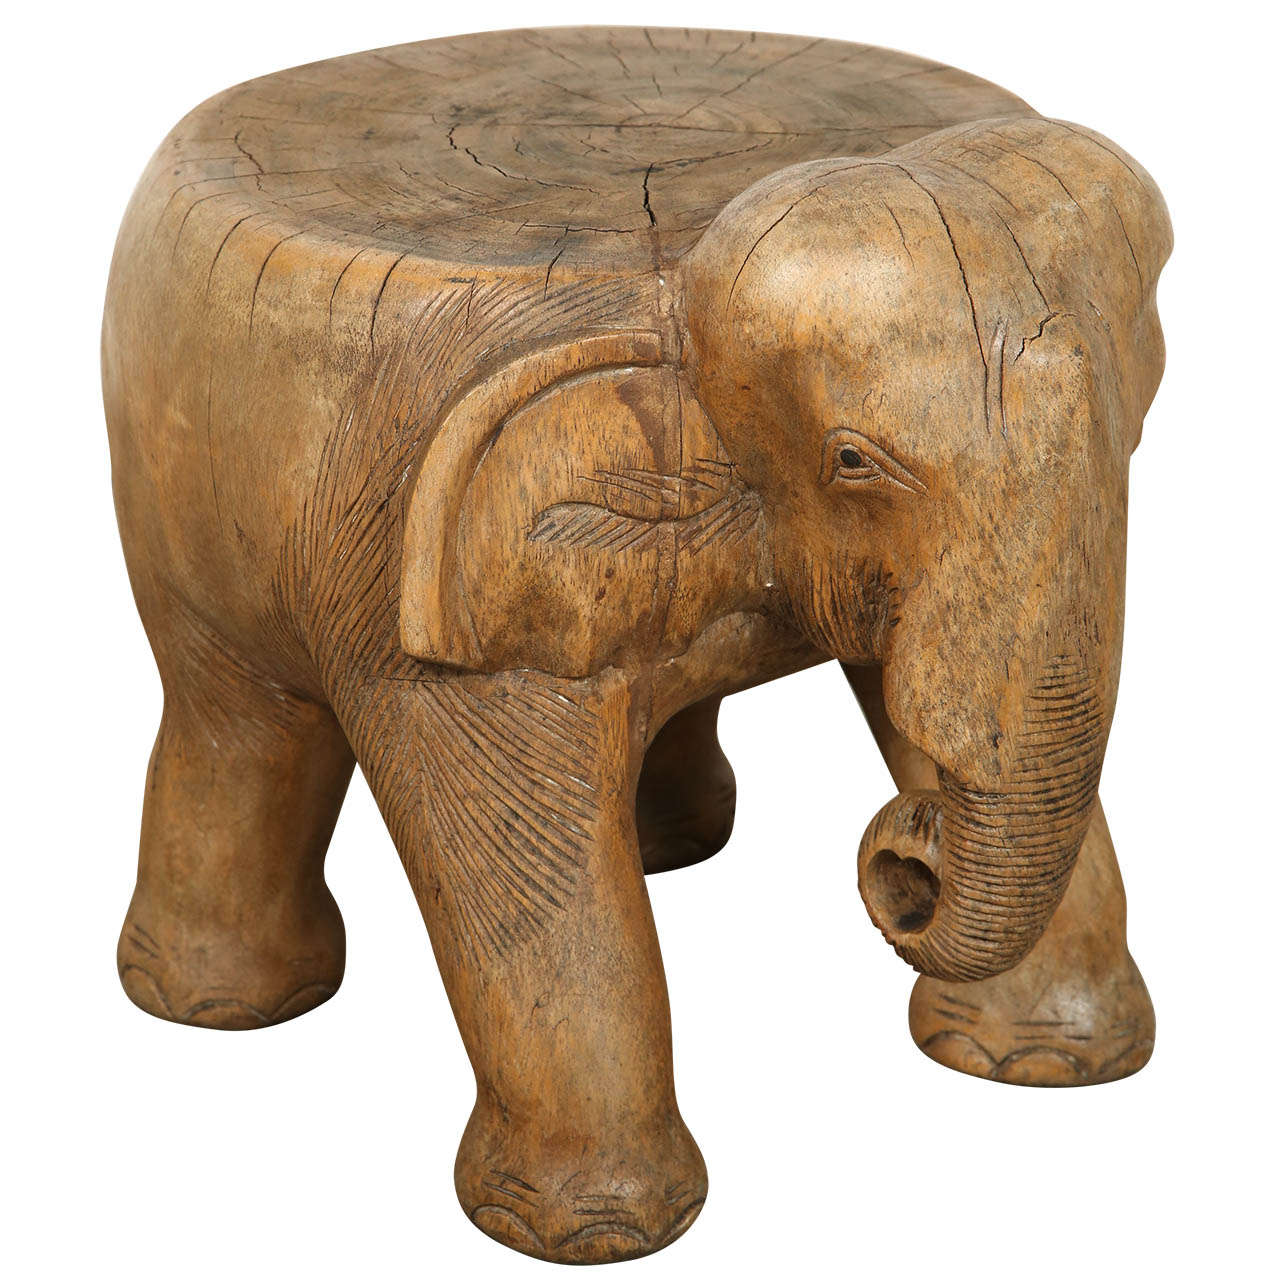 elephant stool handcarved wood at stdibs - elephant stool handcarved wood